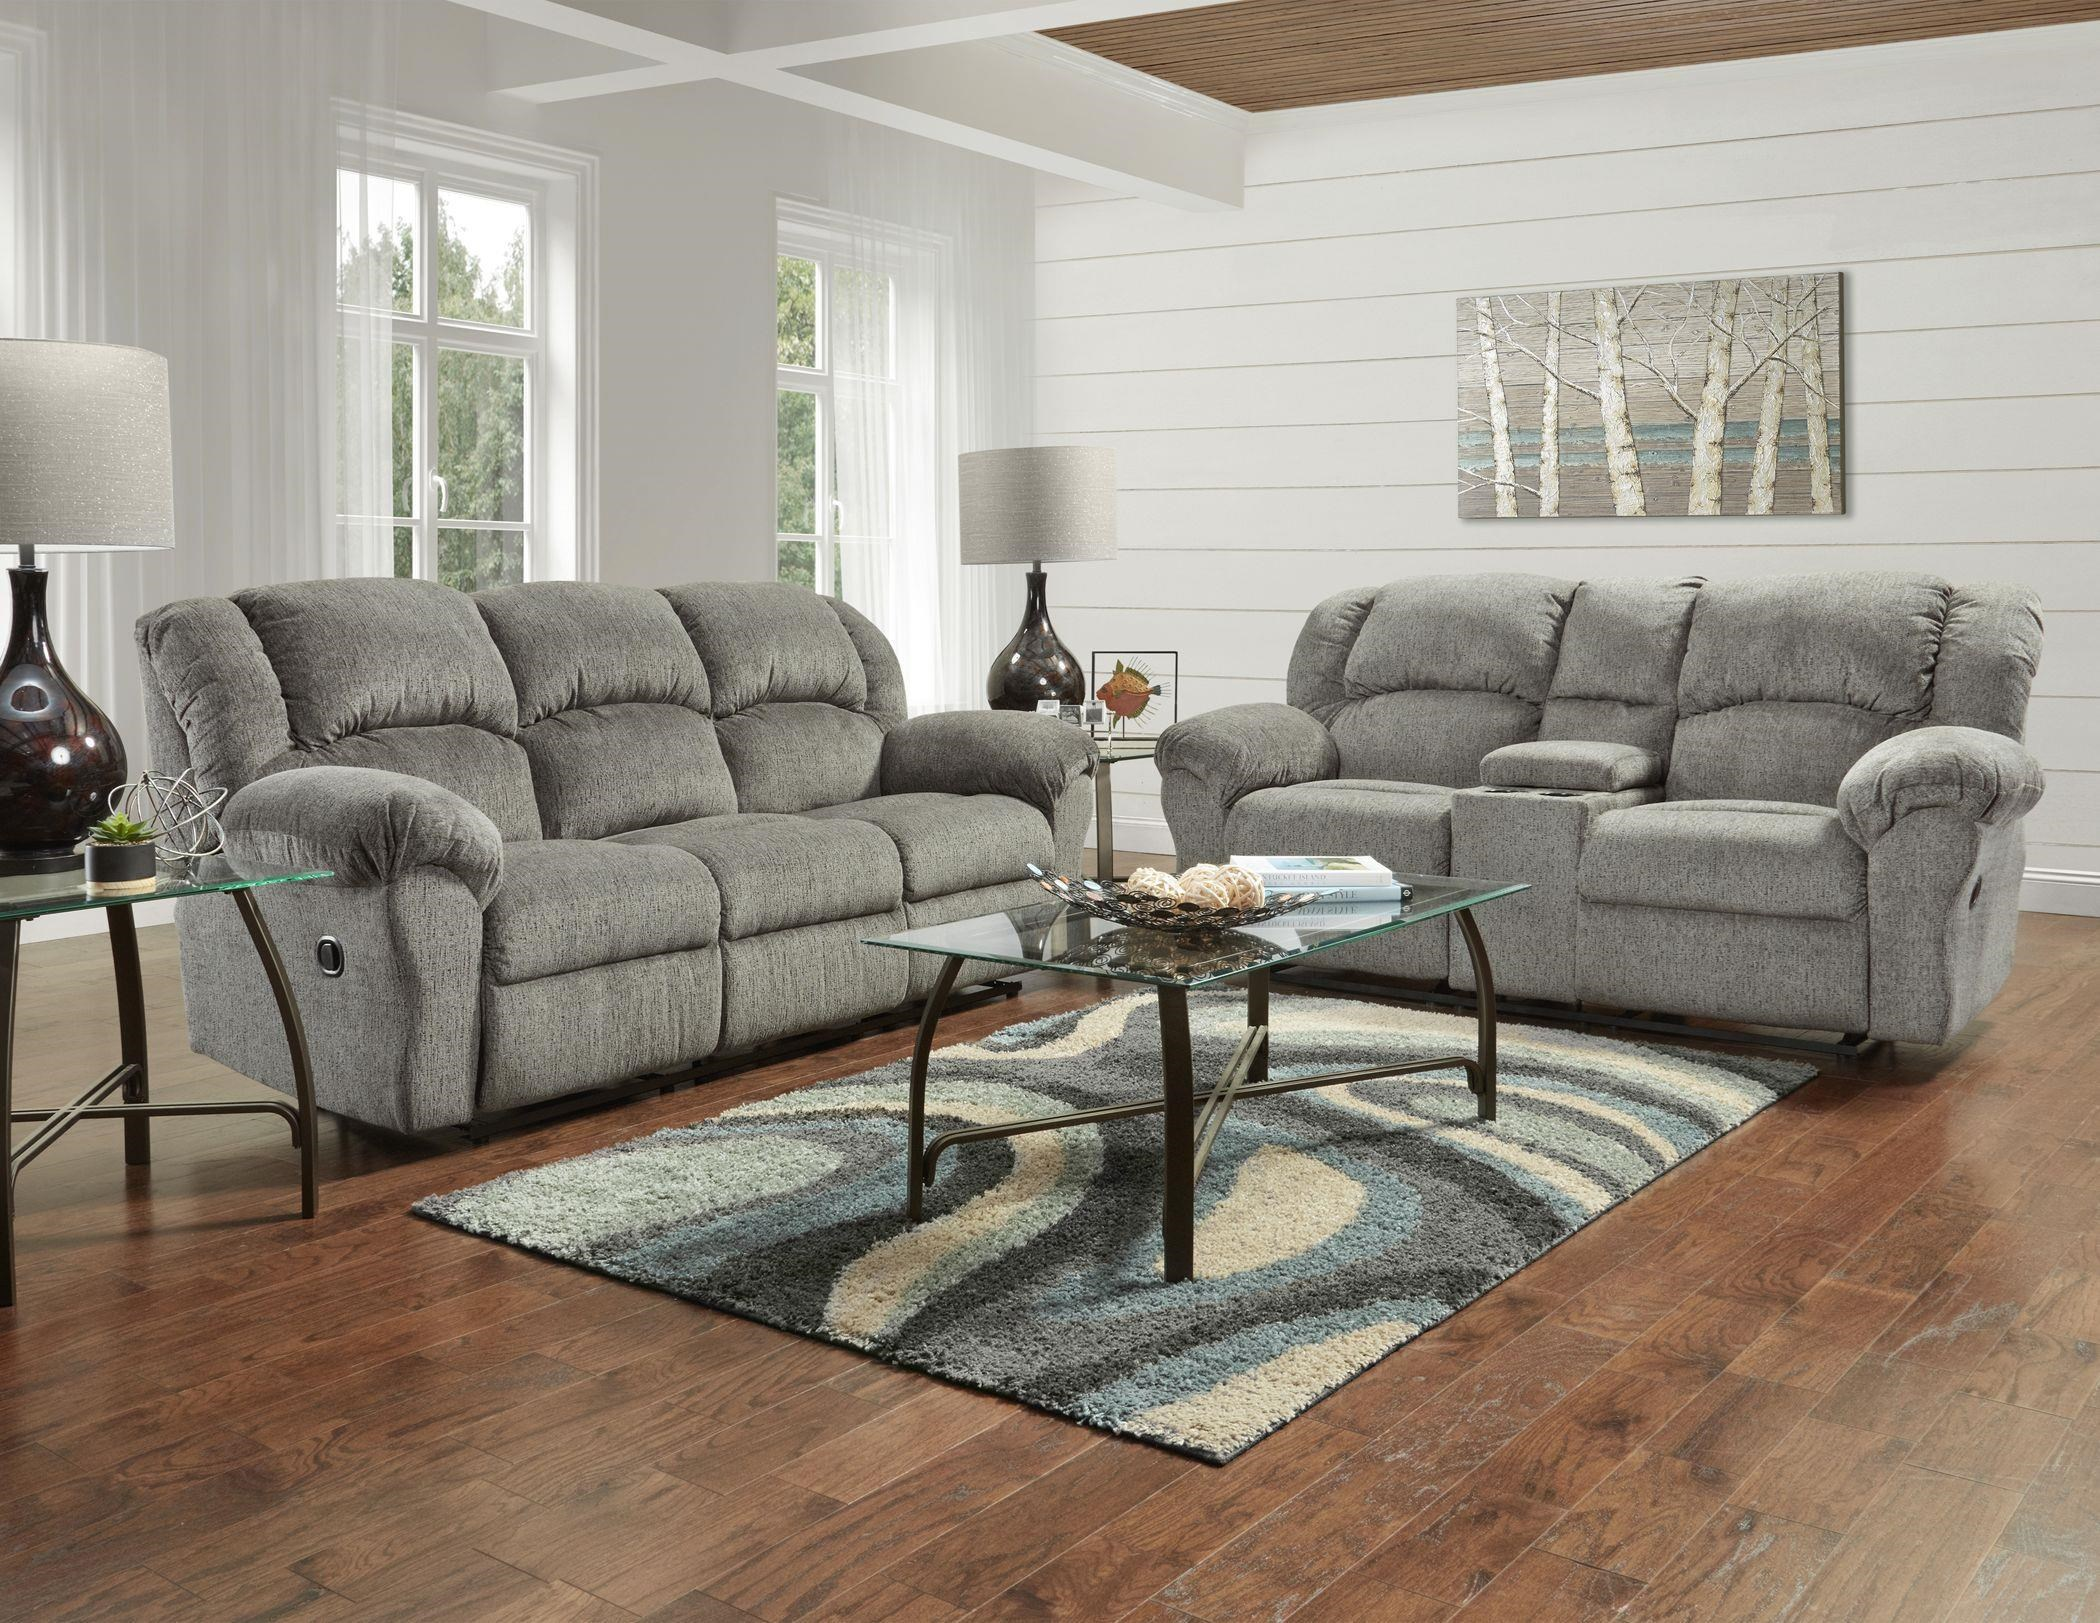 Allure Grey Reclining Loveseat by Affordable Furniture at Wilcox Furniture